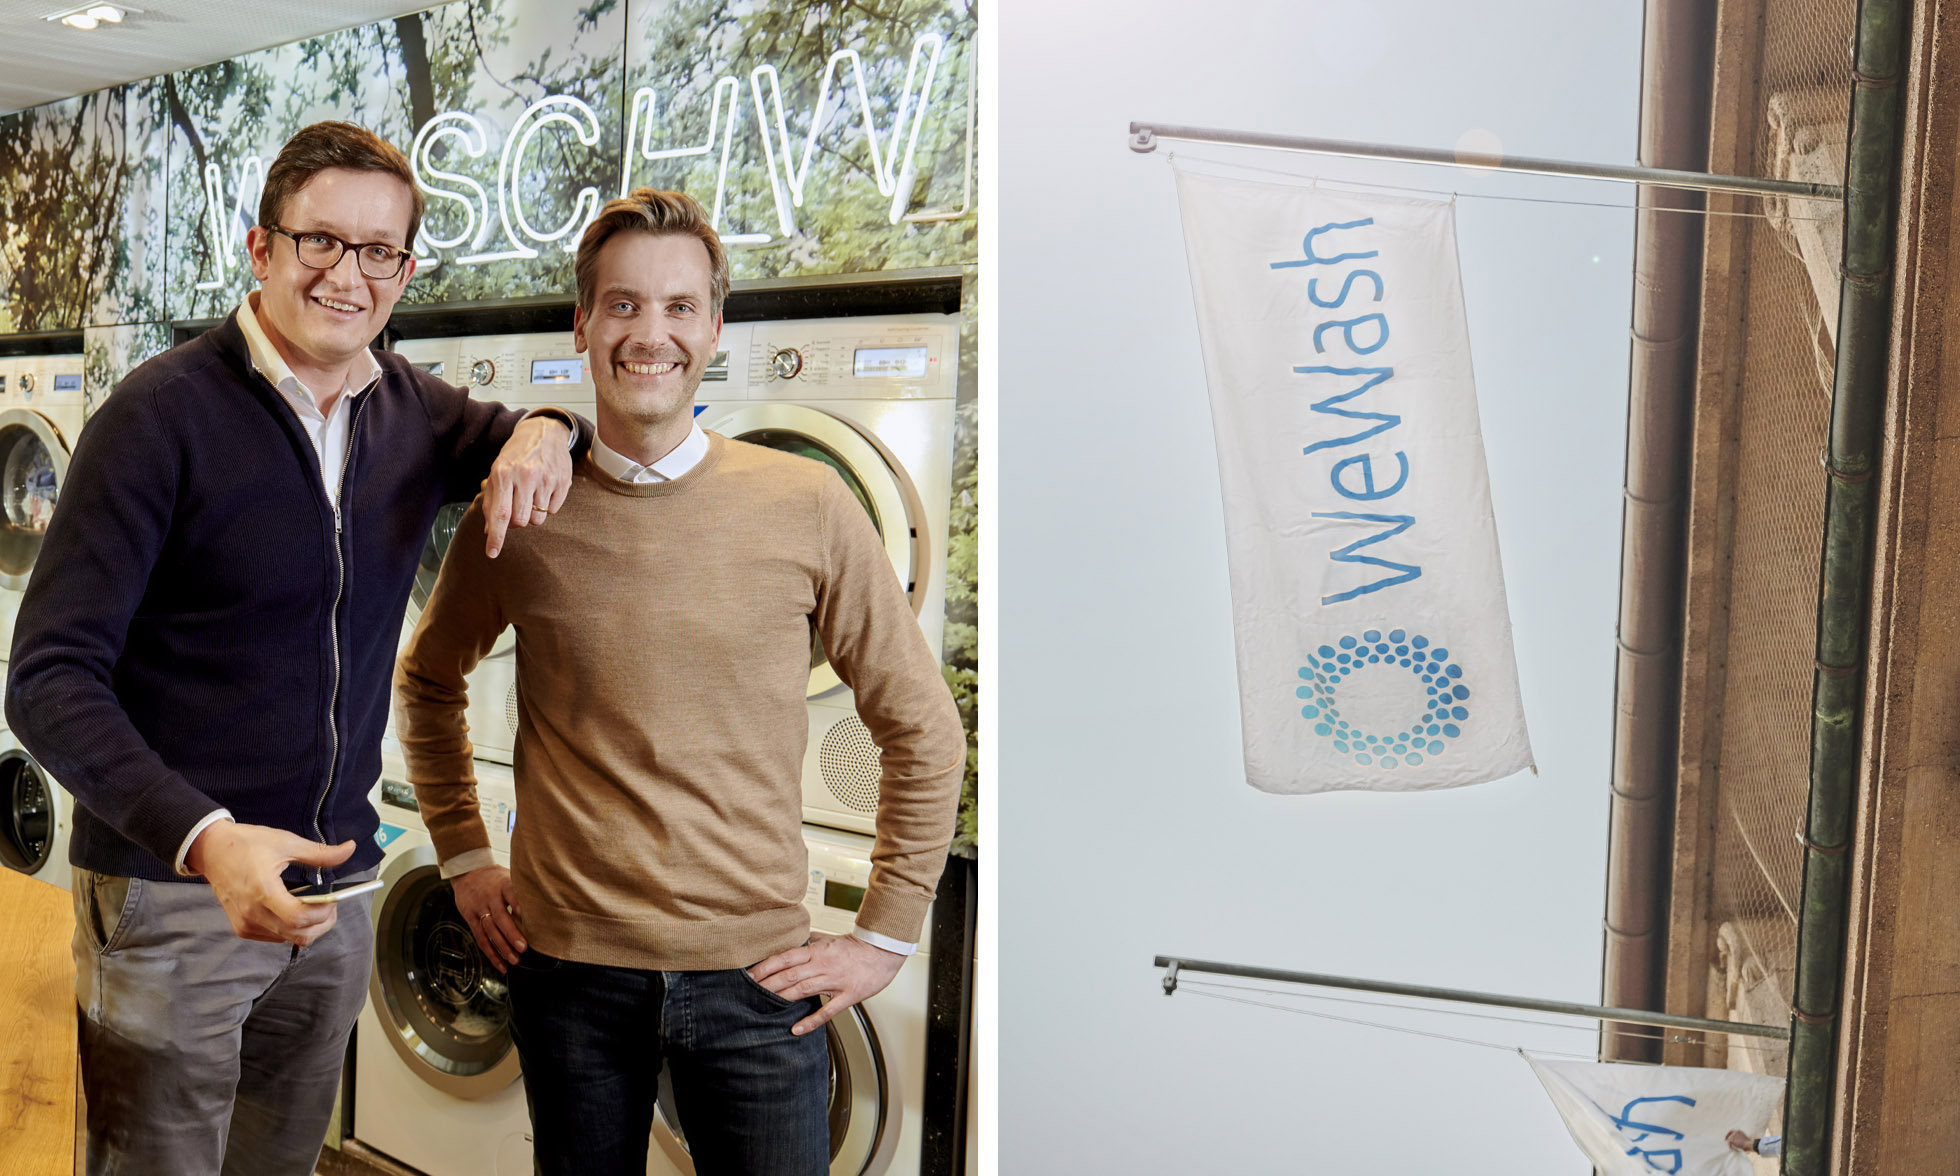 Right: WeWash Founders Dr. Rafael Kirschner and Philip Laukart standing in front of washing machines in the Das Reserl student residence. Left: The WeWash banner at headquarters.